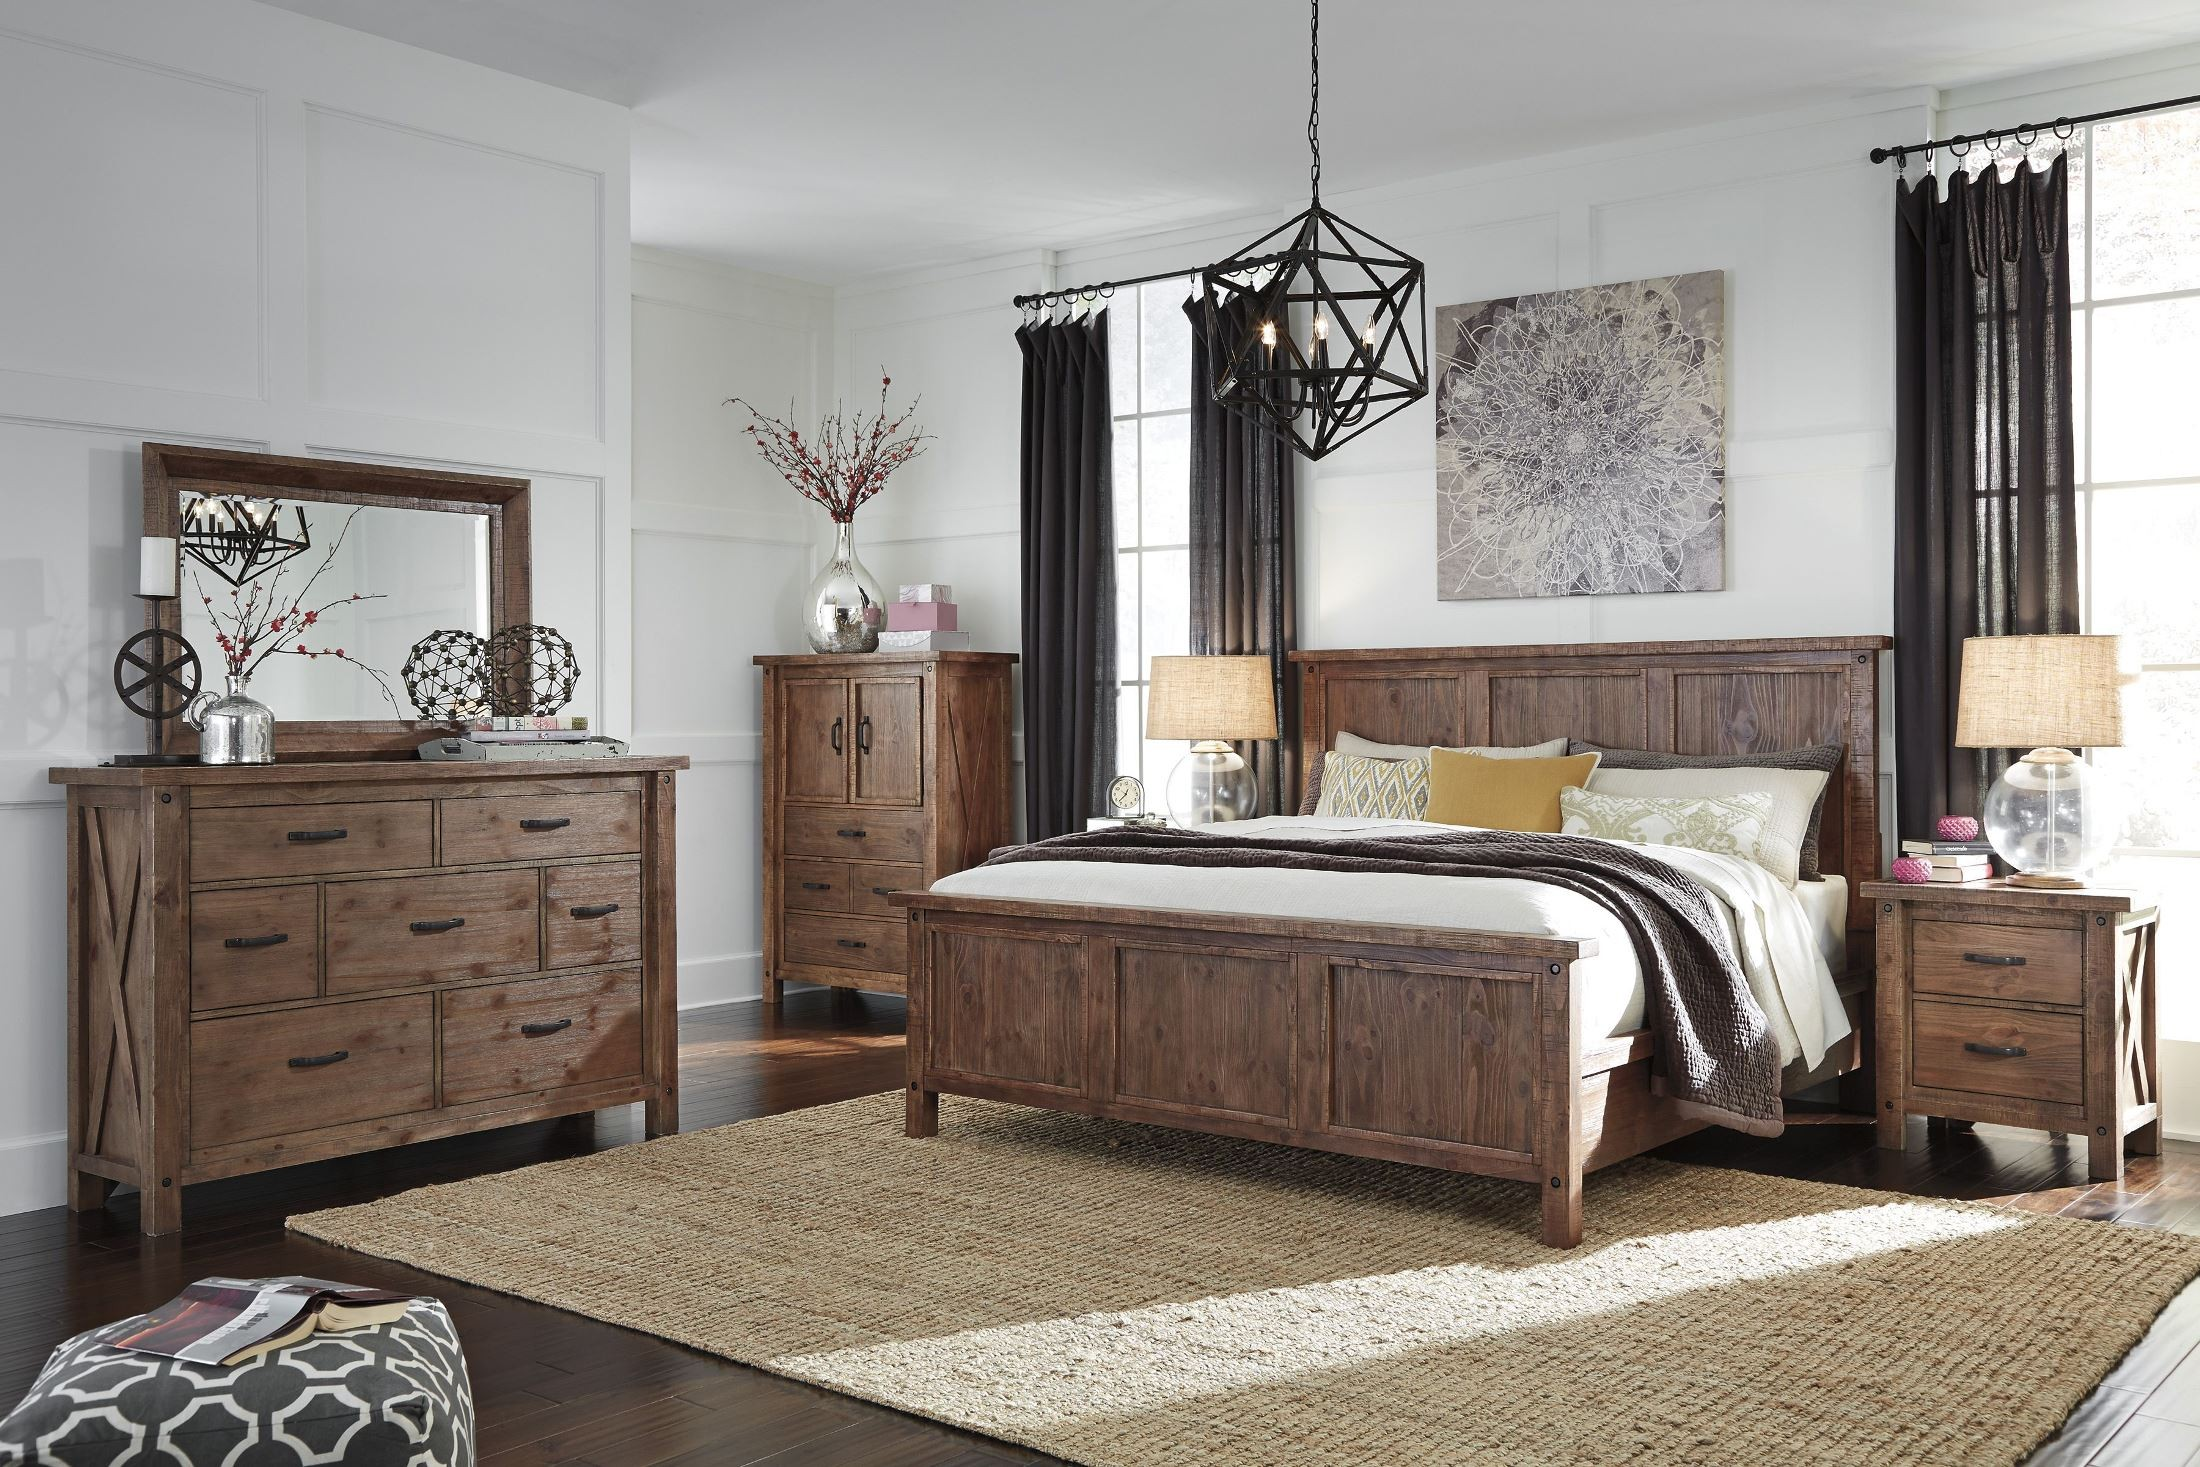 Tamilo Grayish Brown Panel Bedroom Set B714 54 57 98 Ashley